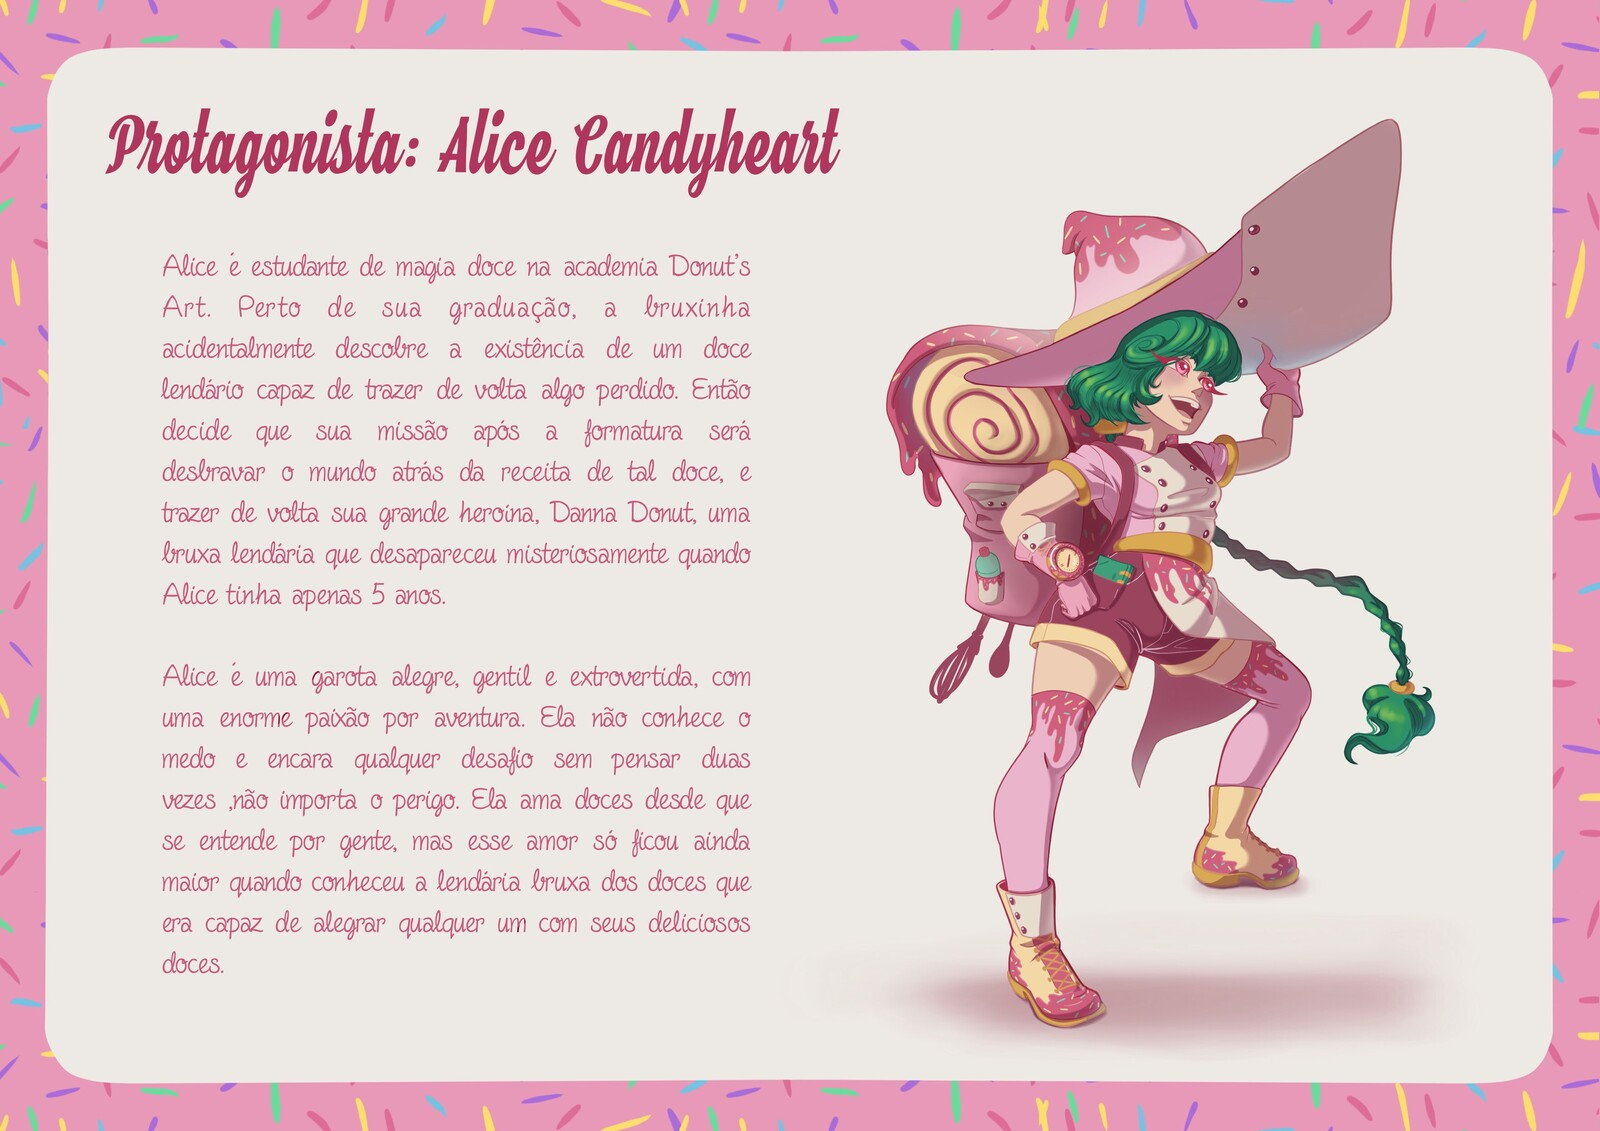 Protagonist: Alice Candyheart